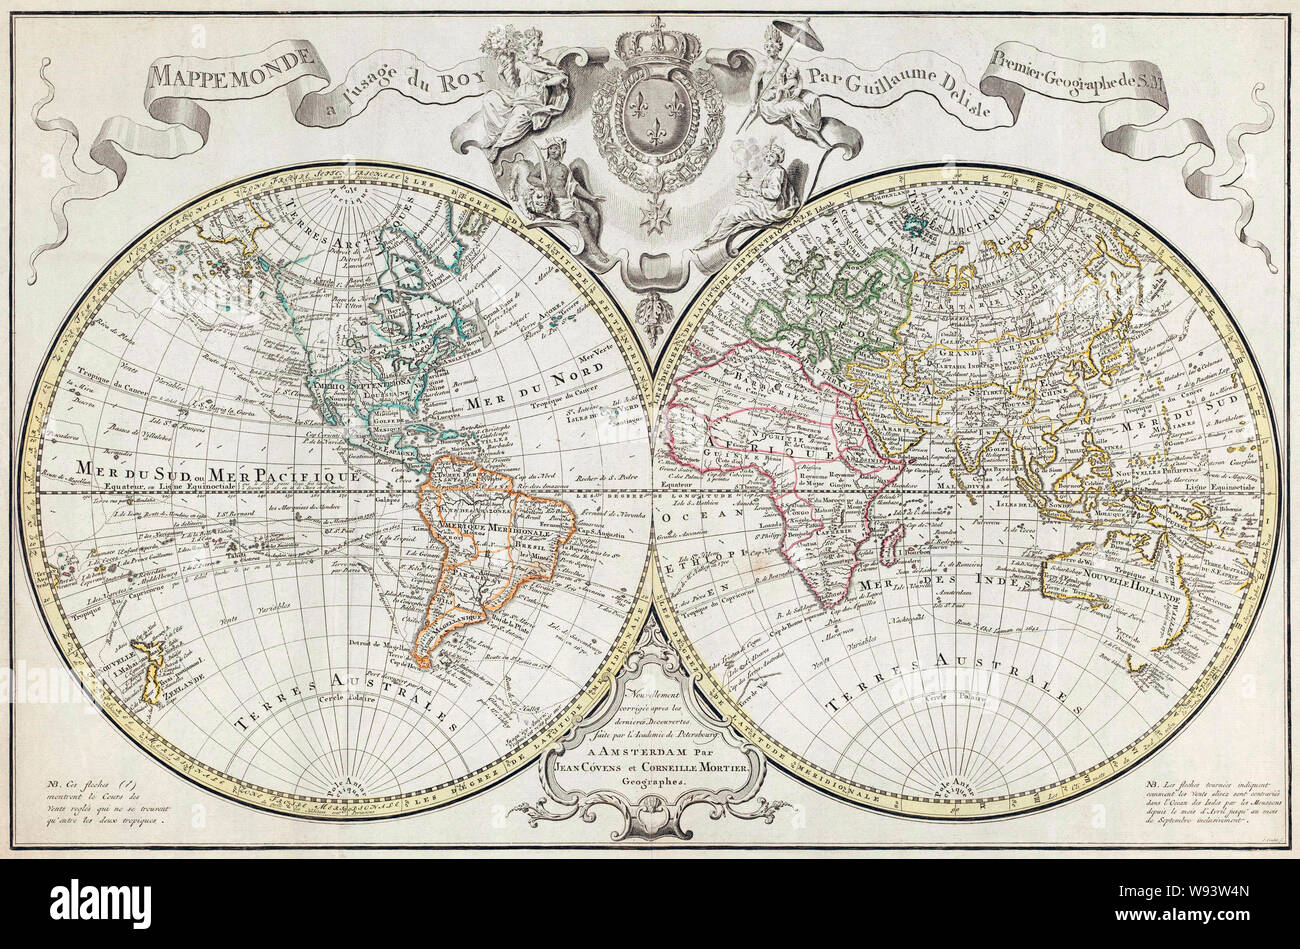 World Map.  A Dutch edition of Guillaume De L'Isle's double hemisphere map of the World first published in Paris in 1720.  It includes marked routes of major explorers.  This edition, dating from the second half of the 18th century incorporates new geographical knowledge, unknown at the time of the original publication. Stock Photo